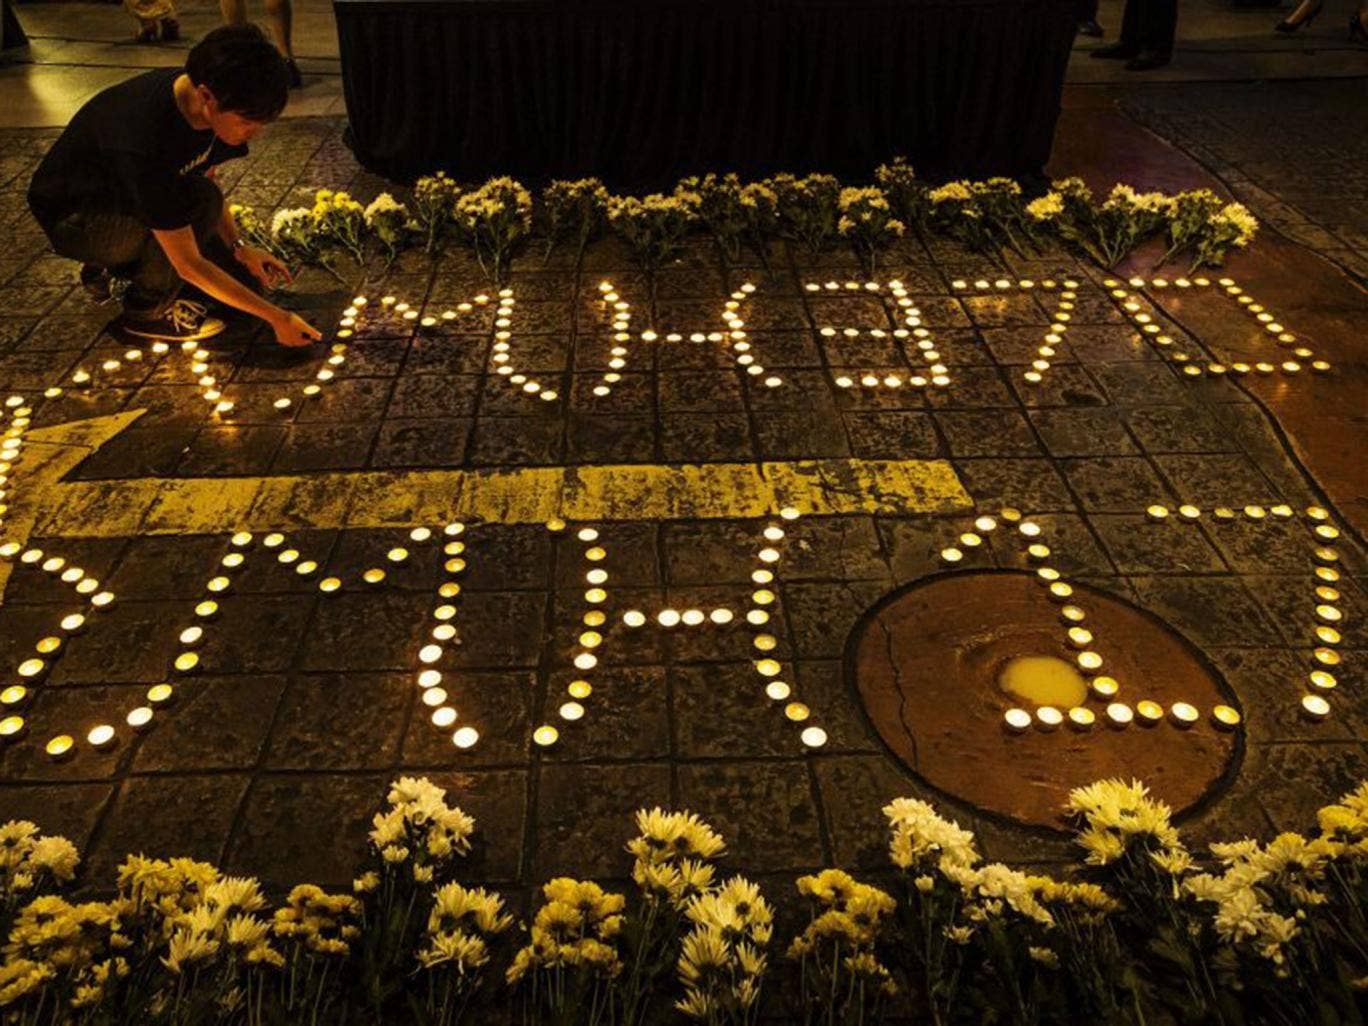 A Malaysian man lights up candles during a vigil in remembrance for passengers and crew of the Malaysian Airline flight MH370 & MH17 in Petaling Jaya near Kuala Lumpur, Malaysia